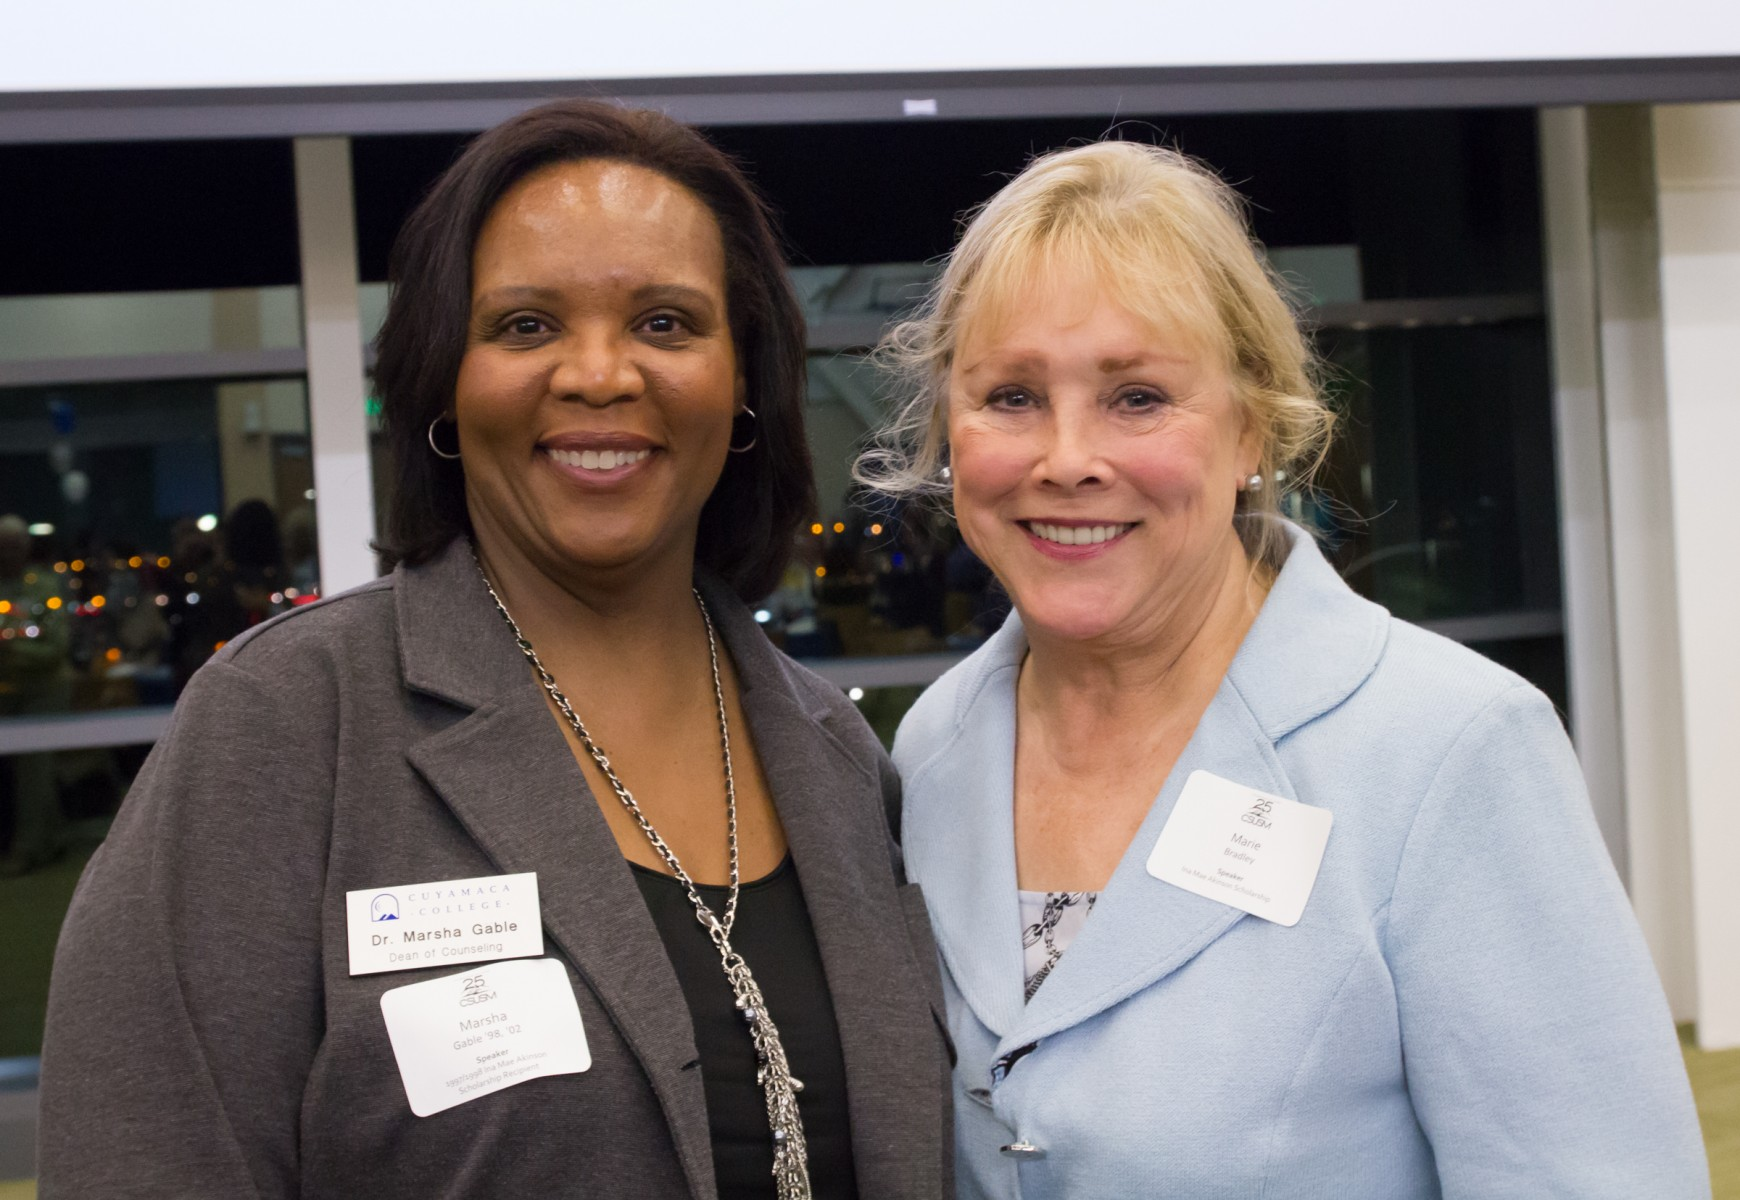 Dr. Marsha Gable and Marie Bradley